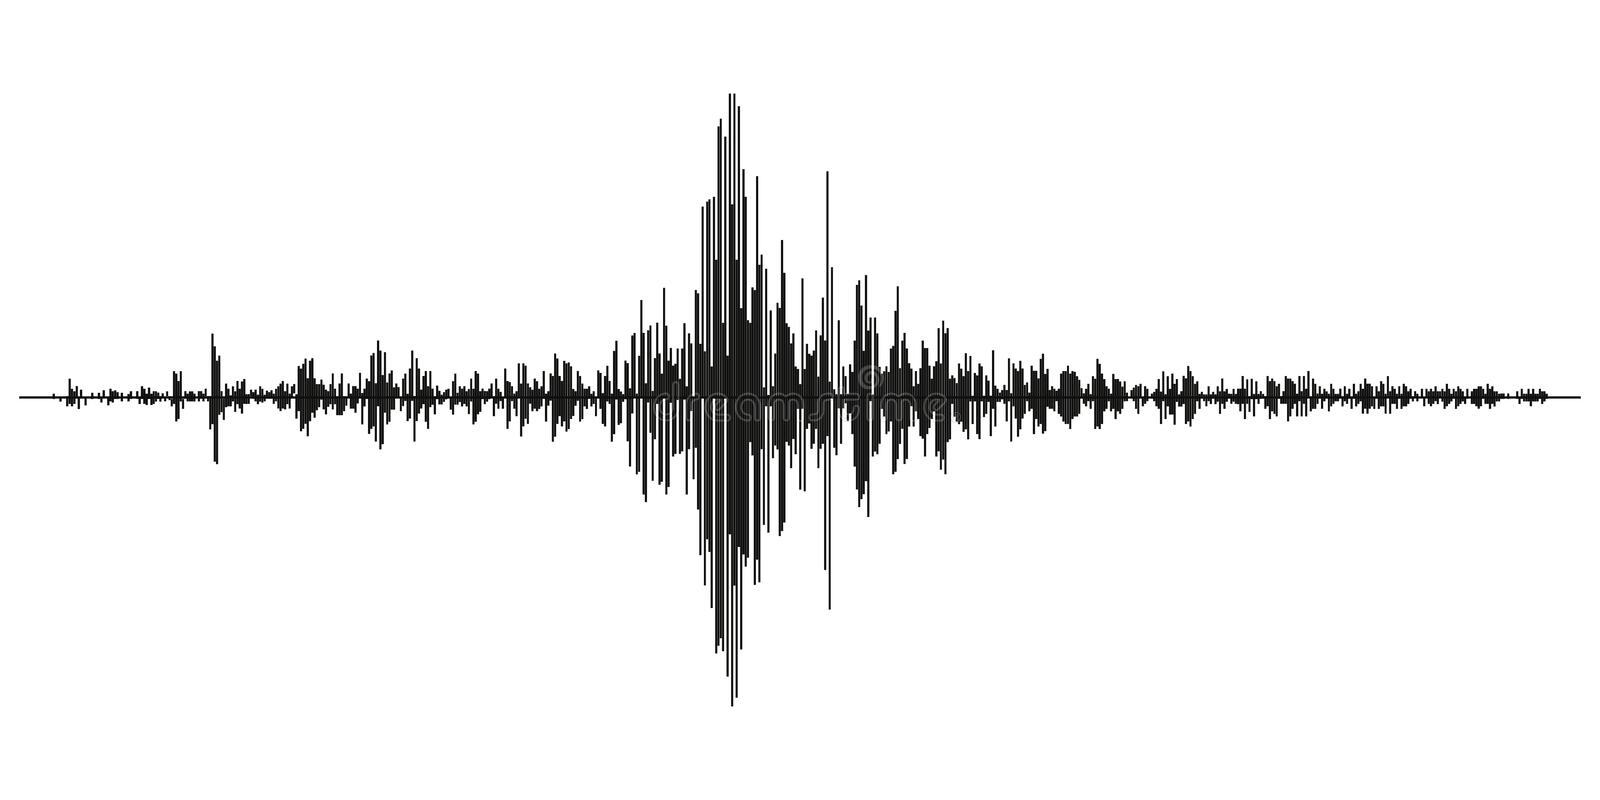 Seismogram of different seismic activity record vector illustration, earthquake wave on paper fixing, stereo audio wave diagram ba. Ckground. seismic tremors royalty free illustration